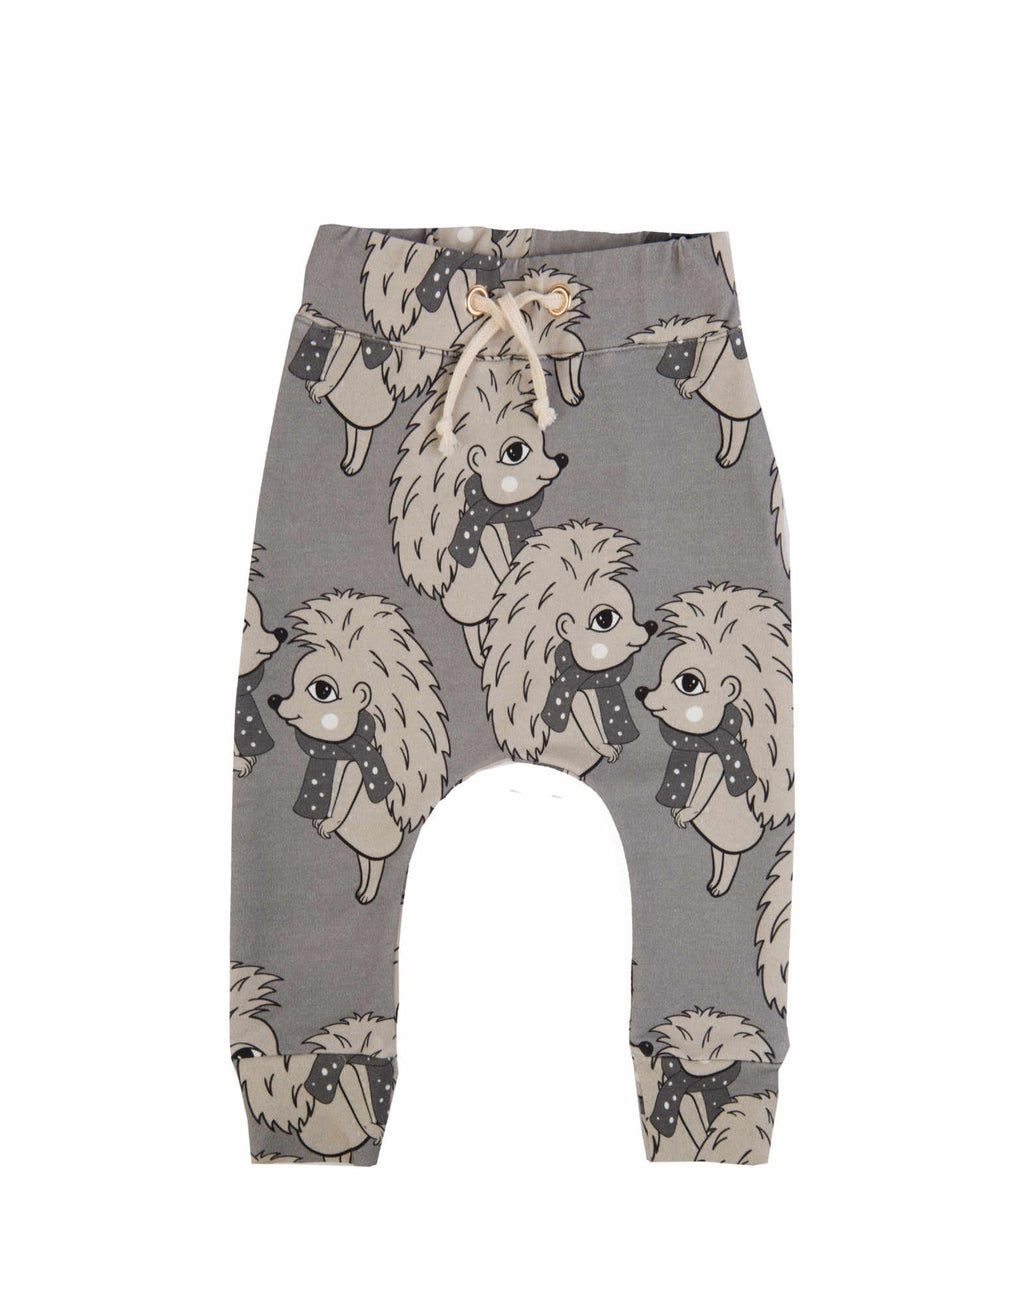 Hedgehog pants Dear Sophie